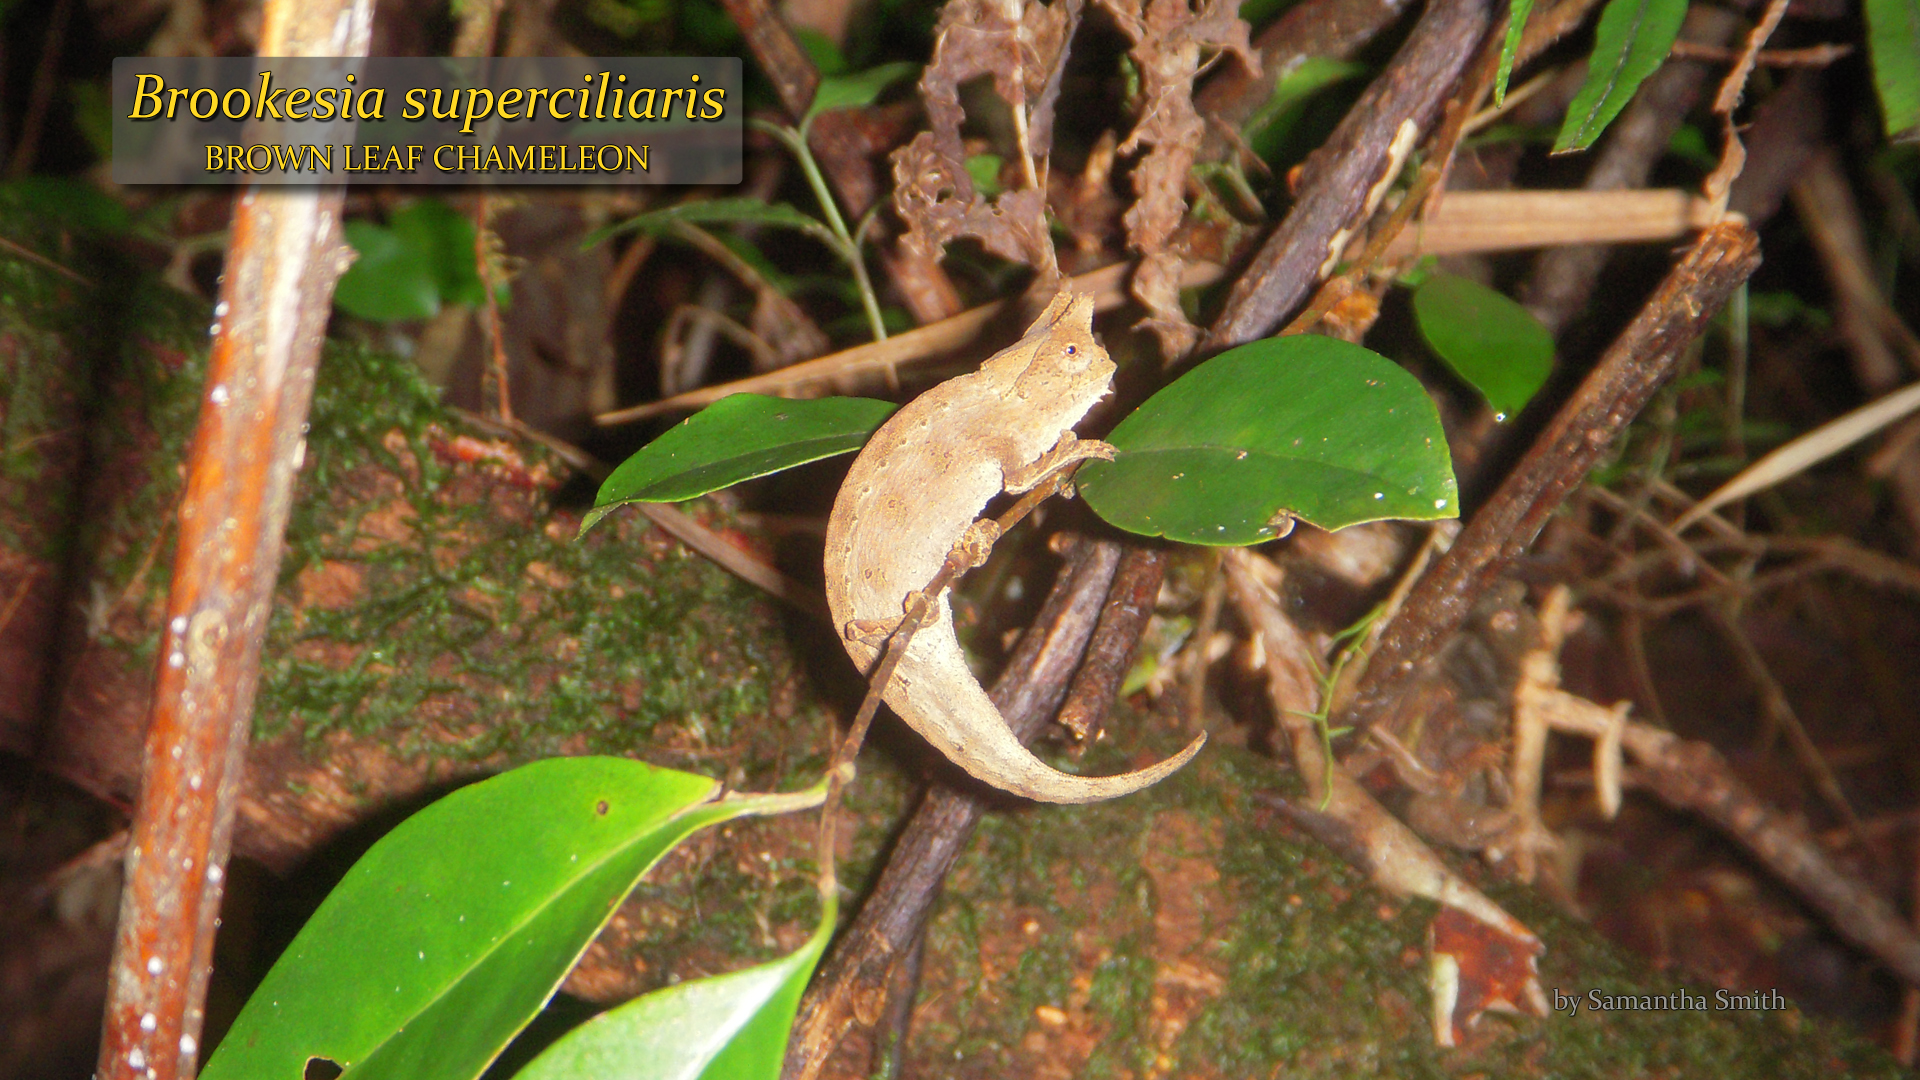 Brookesia superciliaris- Samantha Smith.jpg